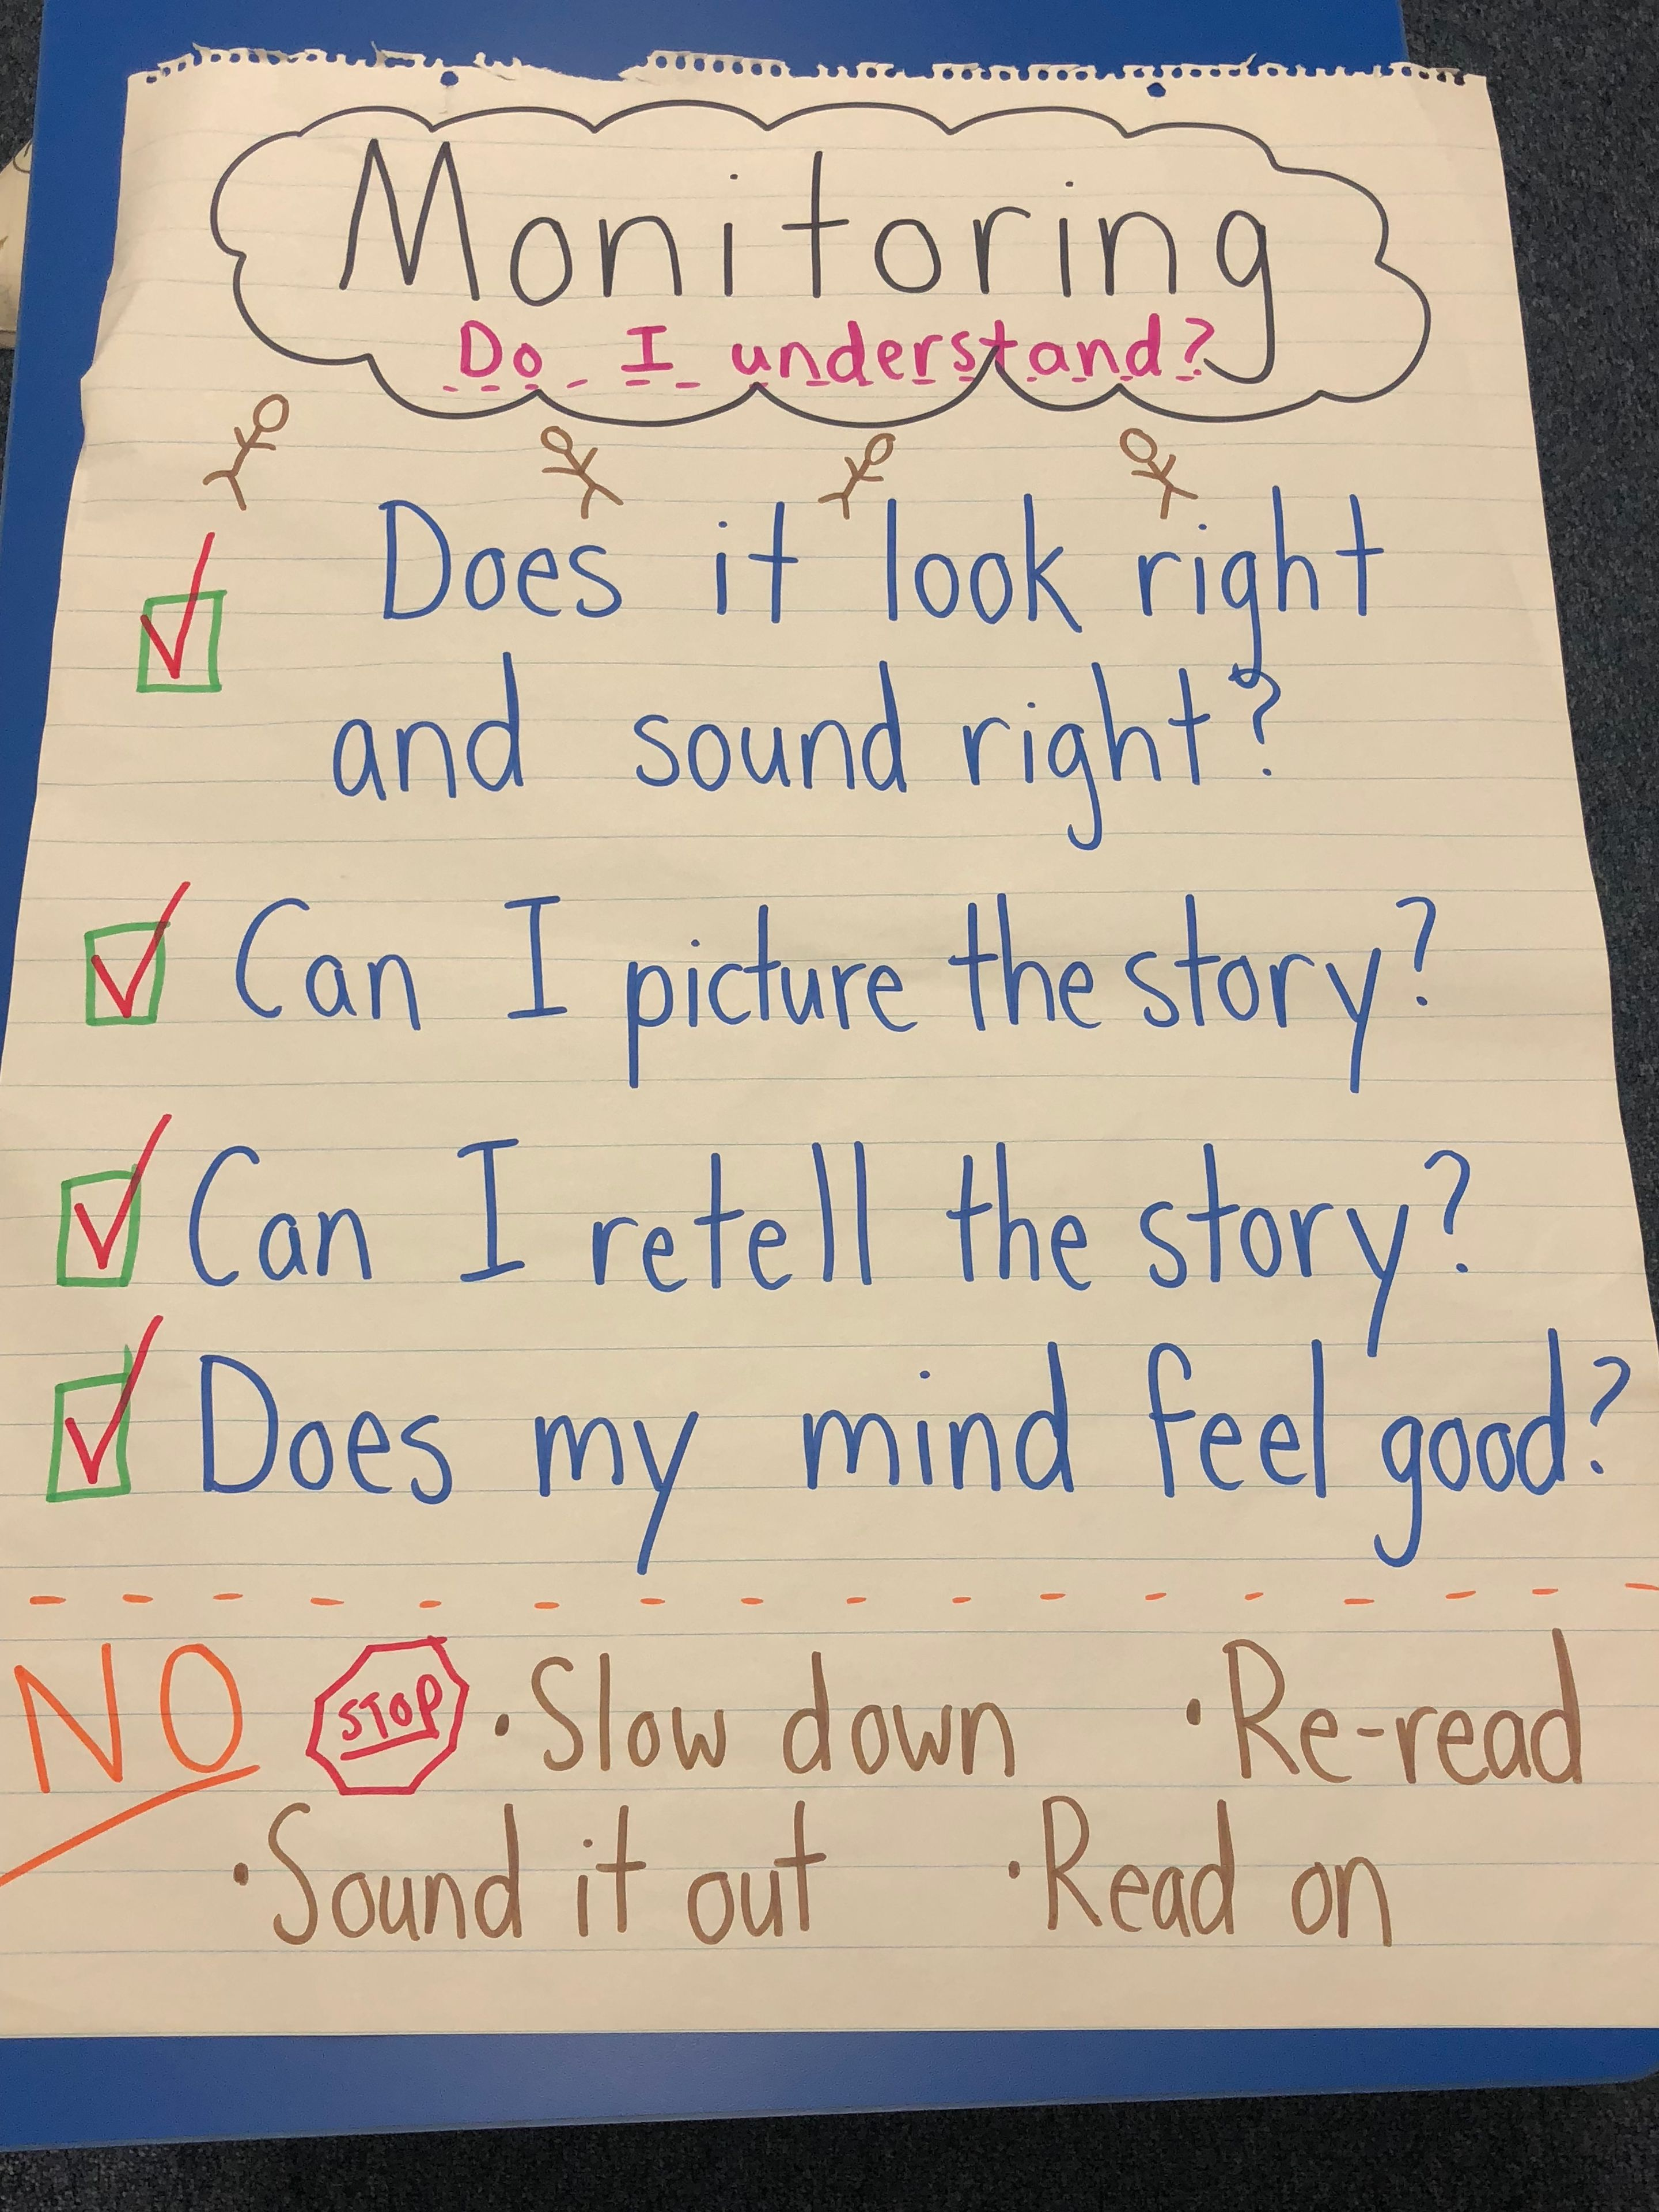 The author's anchor chart for reading comprehension